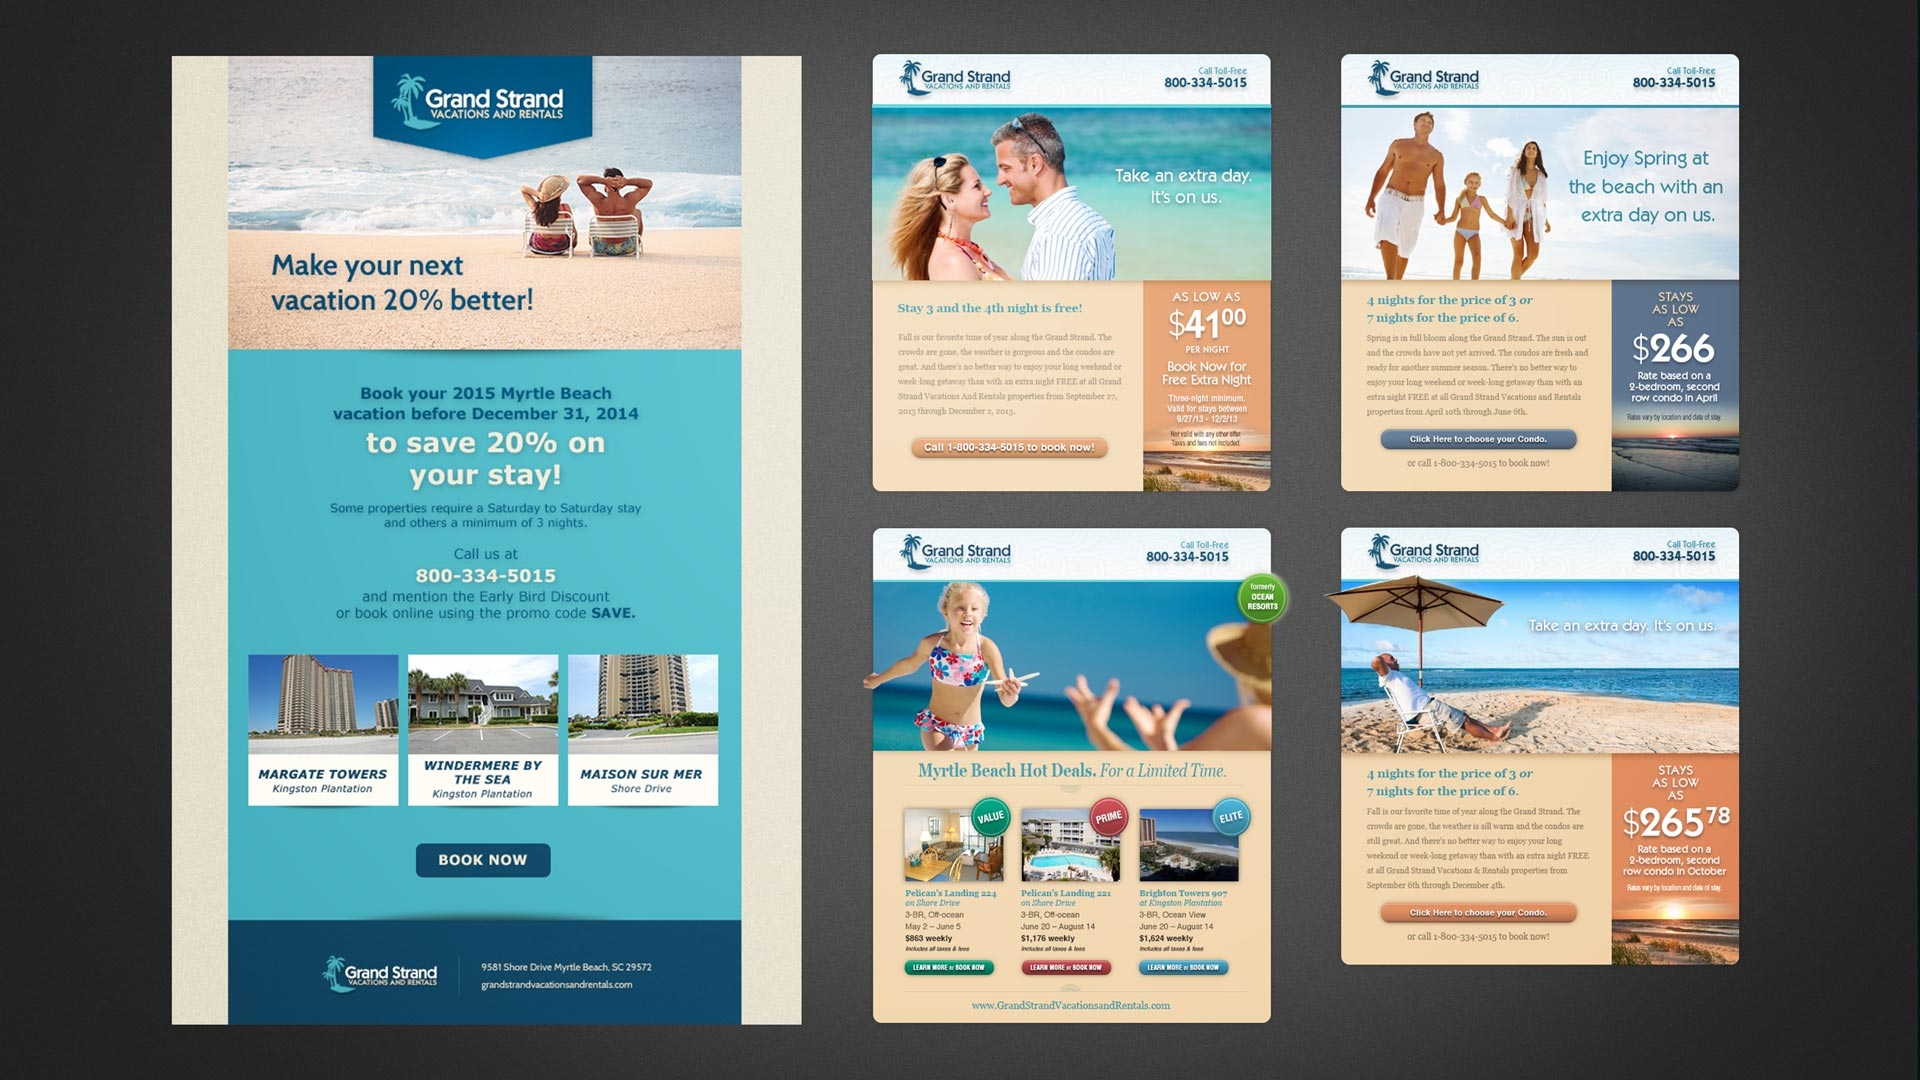 Grand Strand Vacations and Rentals Email